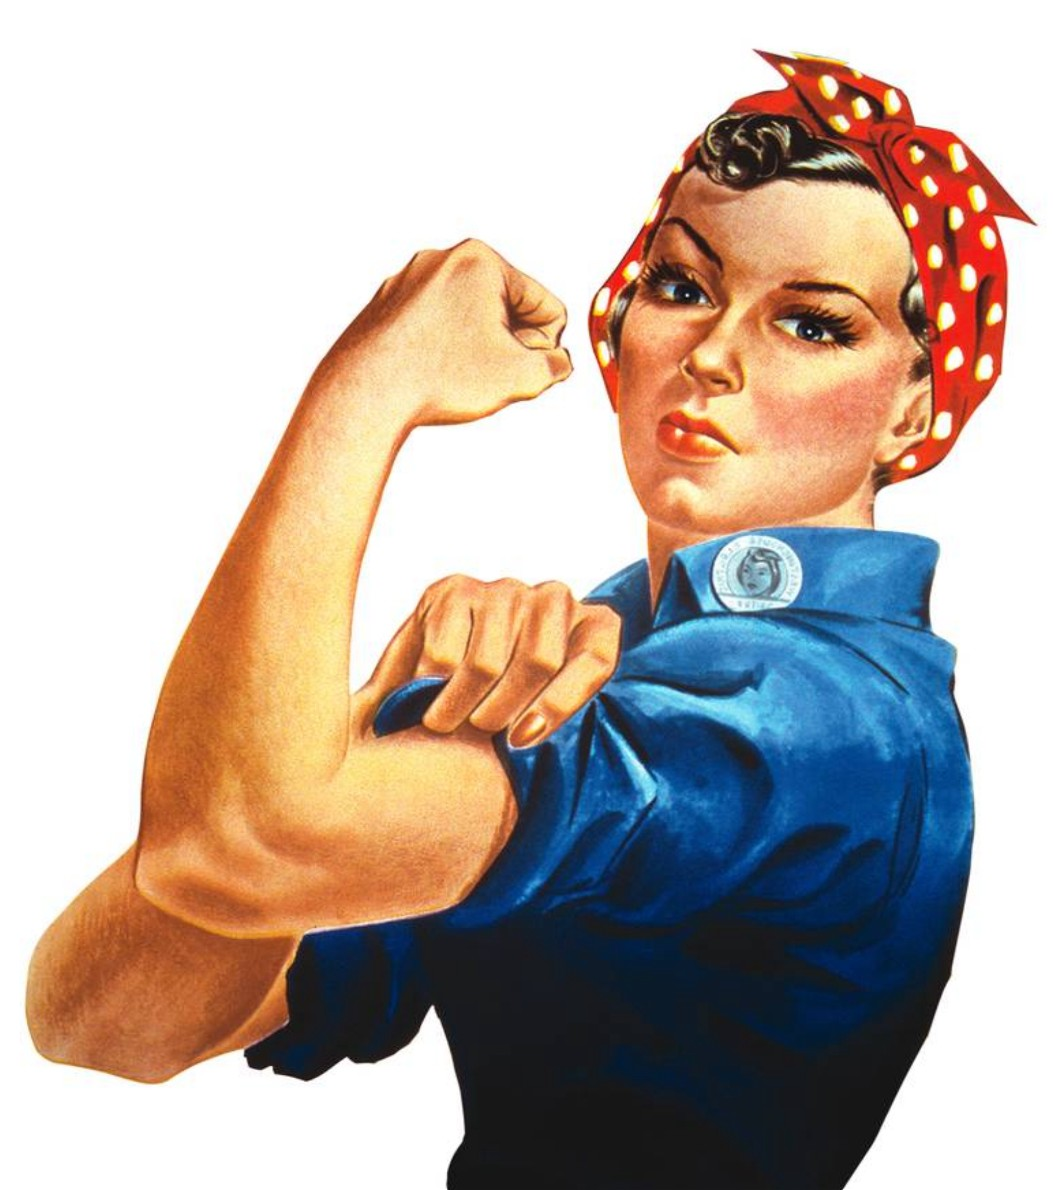 Image of Rosie the riveter for McDermott and McDermott women's divorce women's rights divorce attorneys